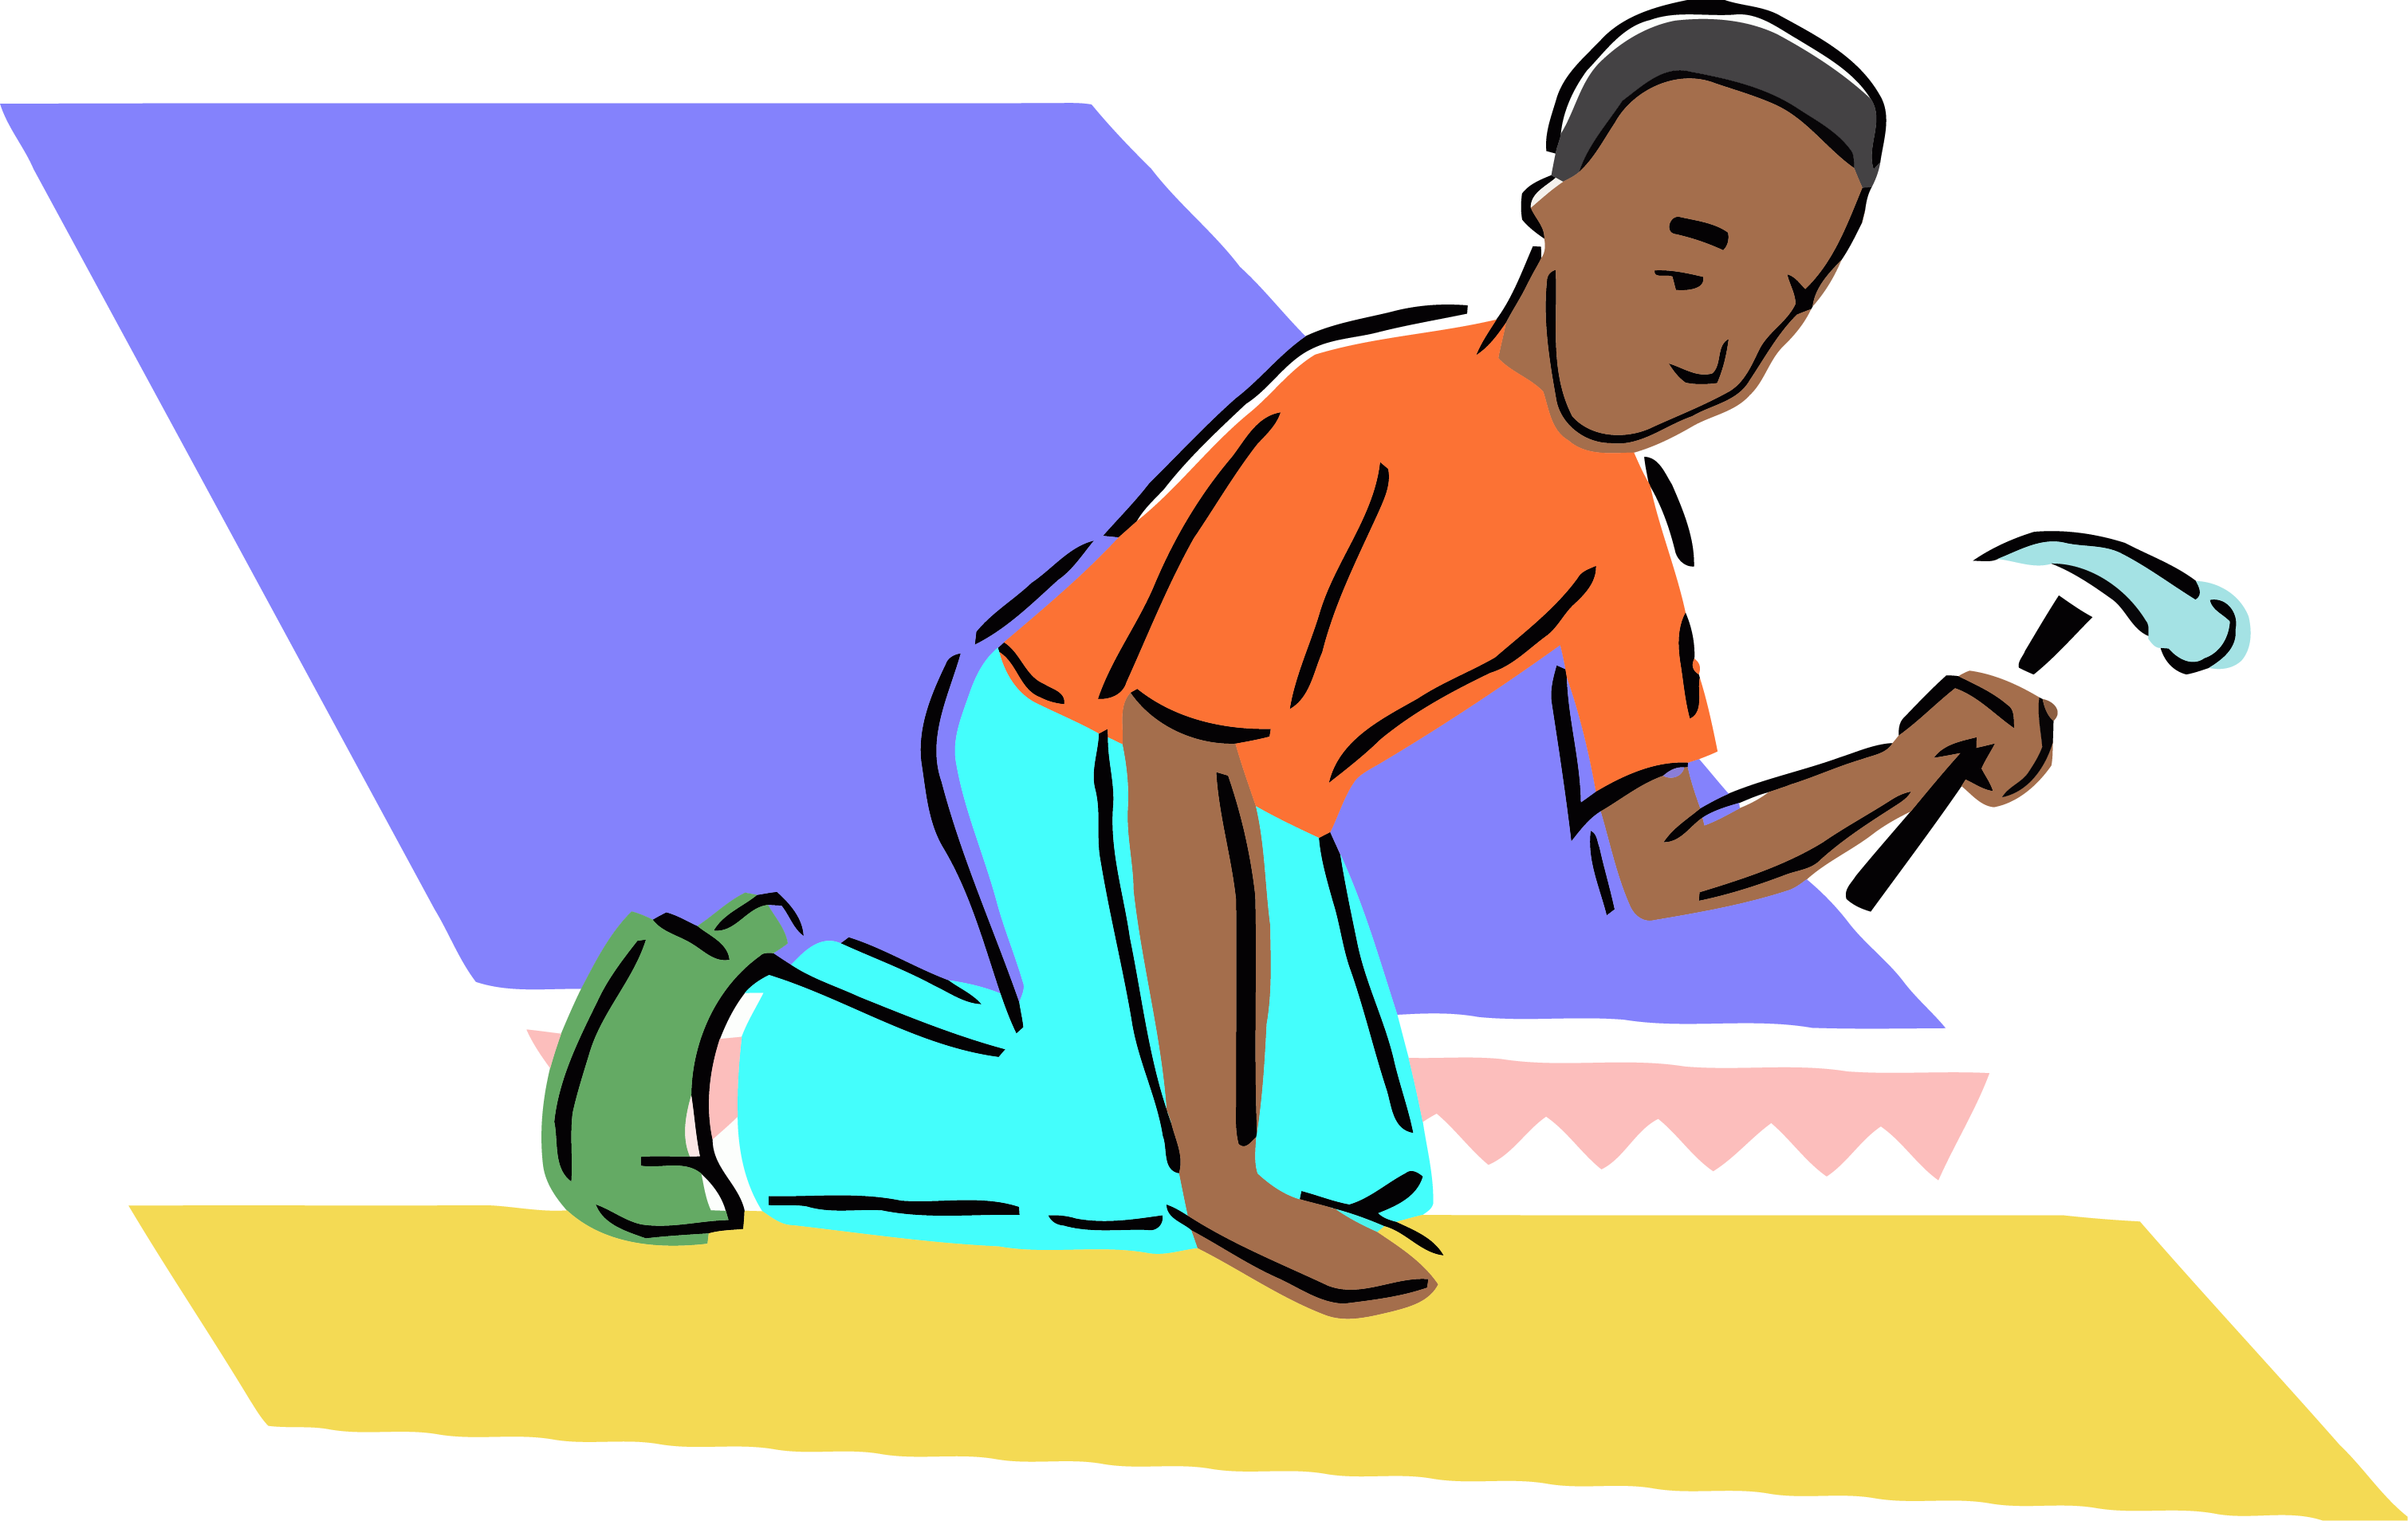 Exercise clipart wallpaper. Working boy png clipartlyclipartly